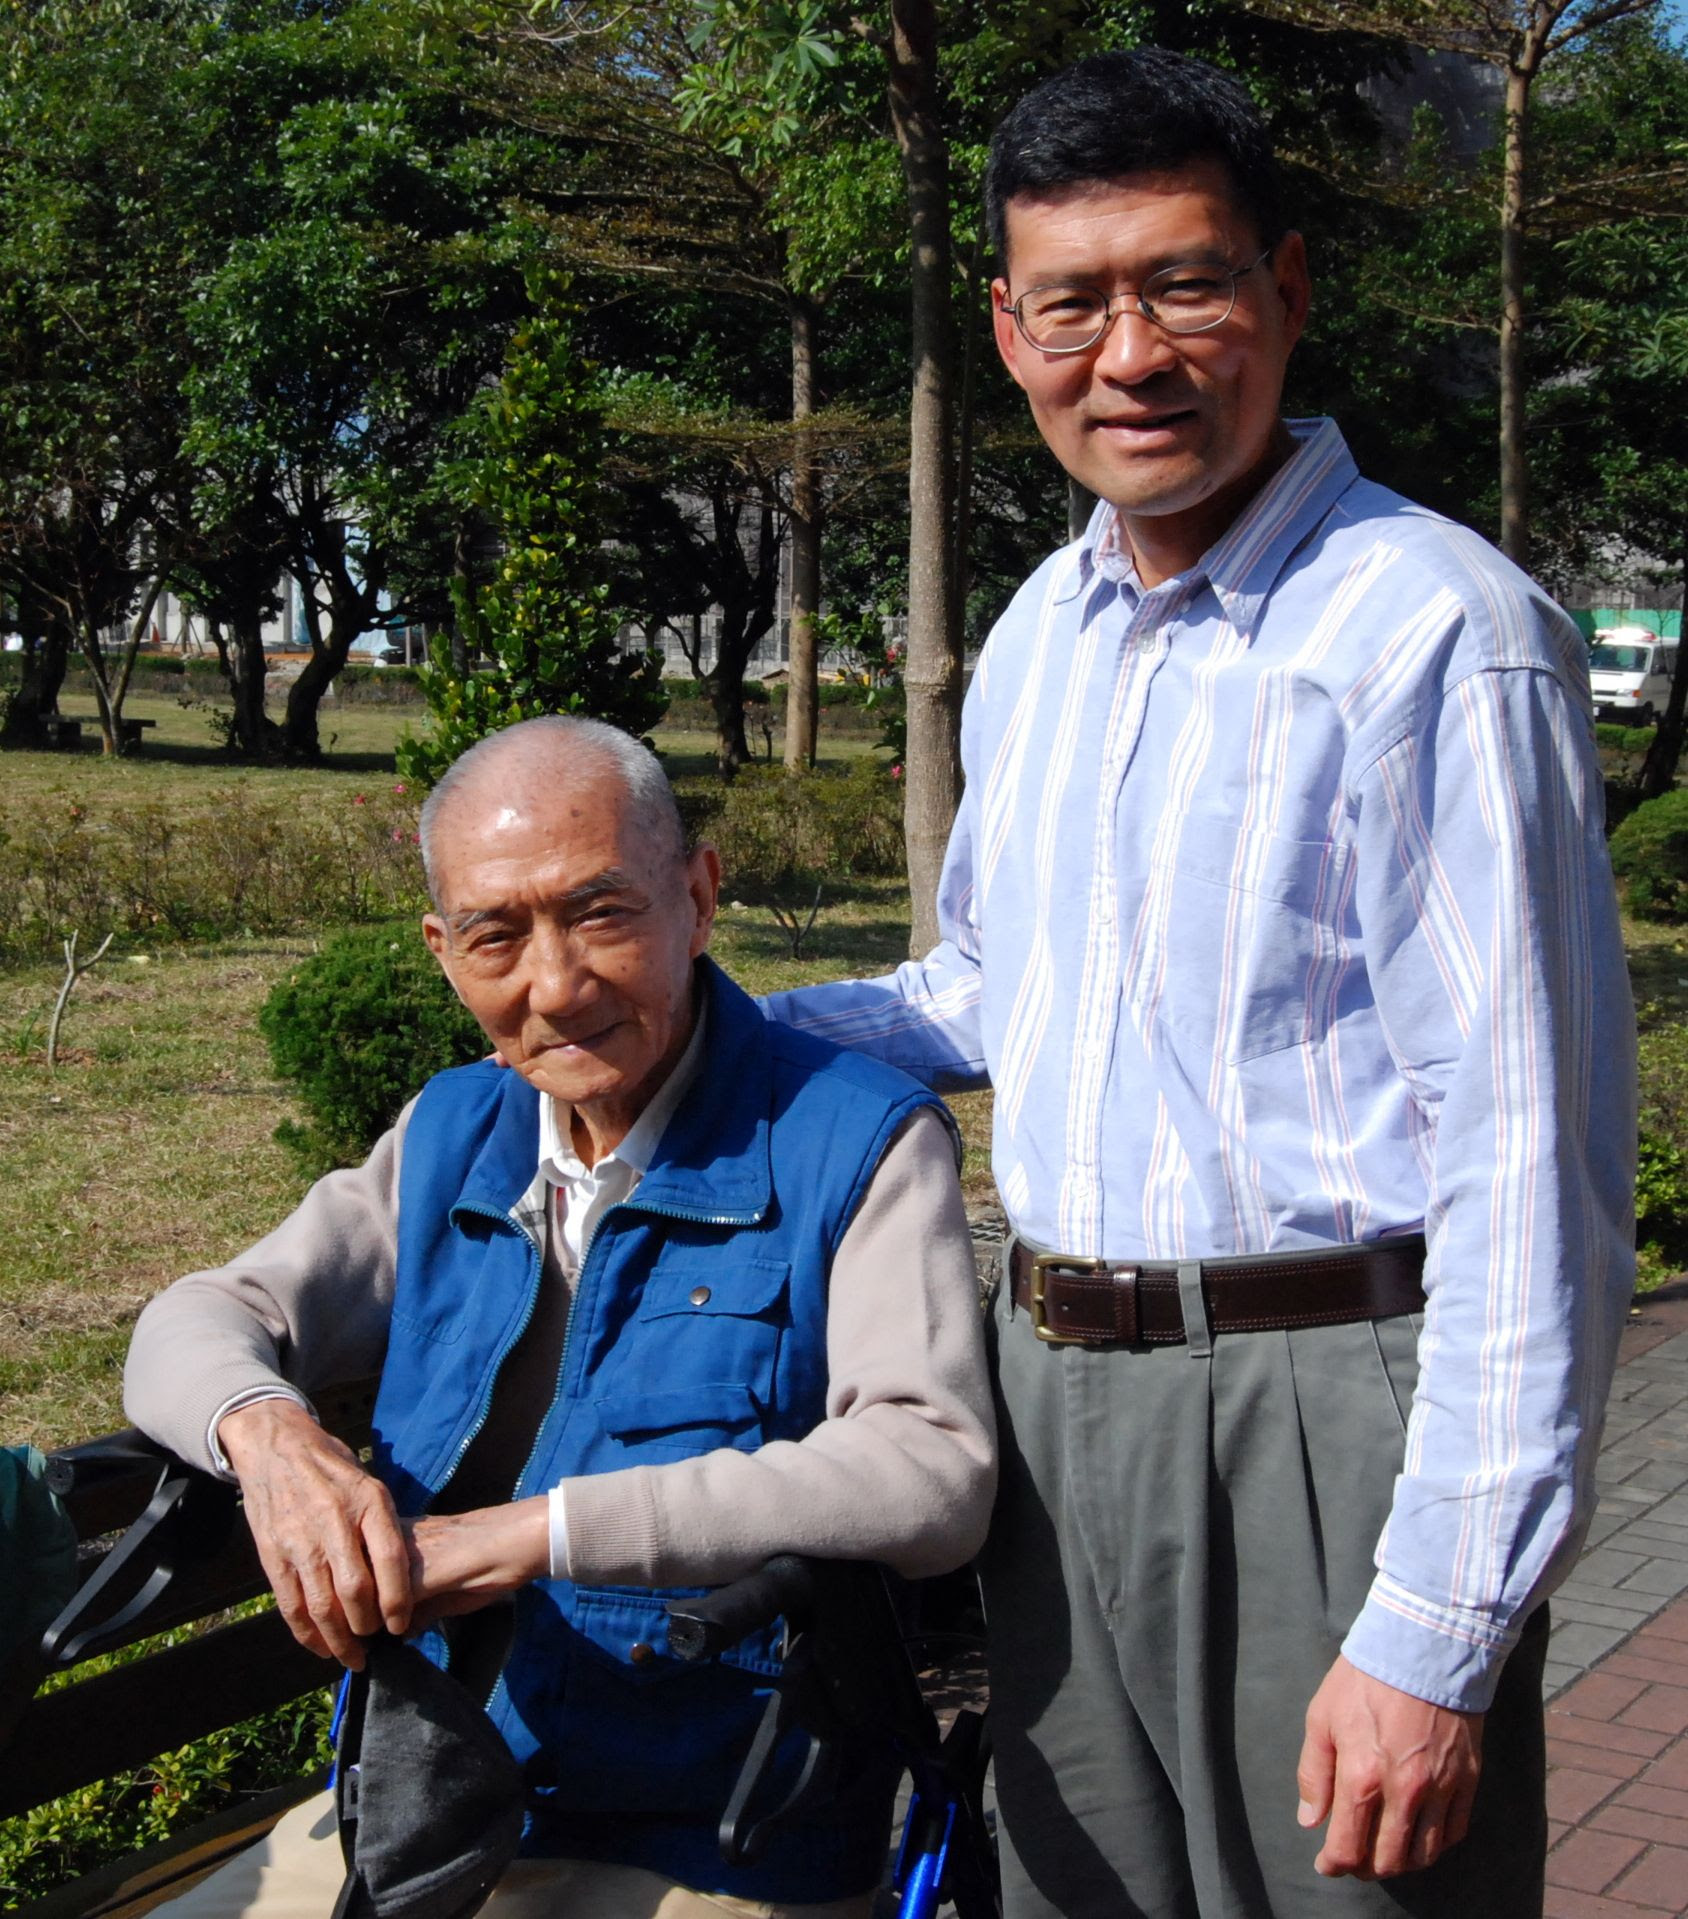 Ming-Bing Chang with his father